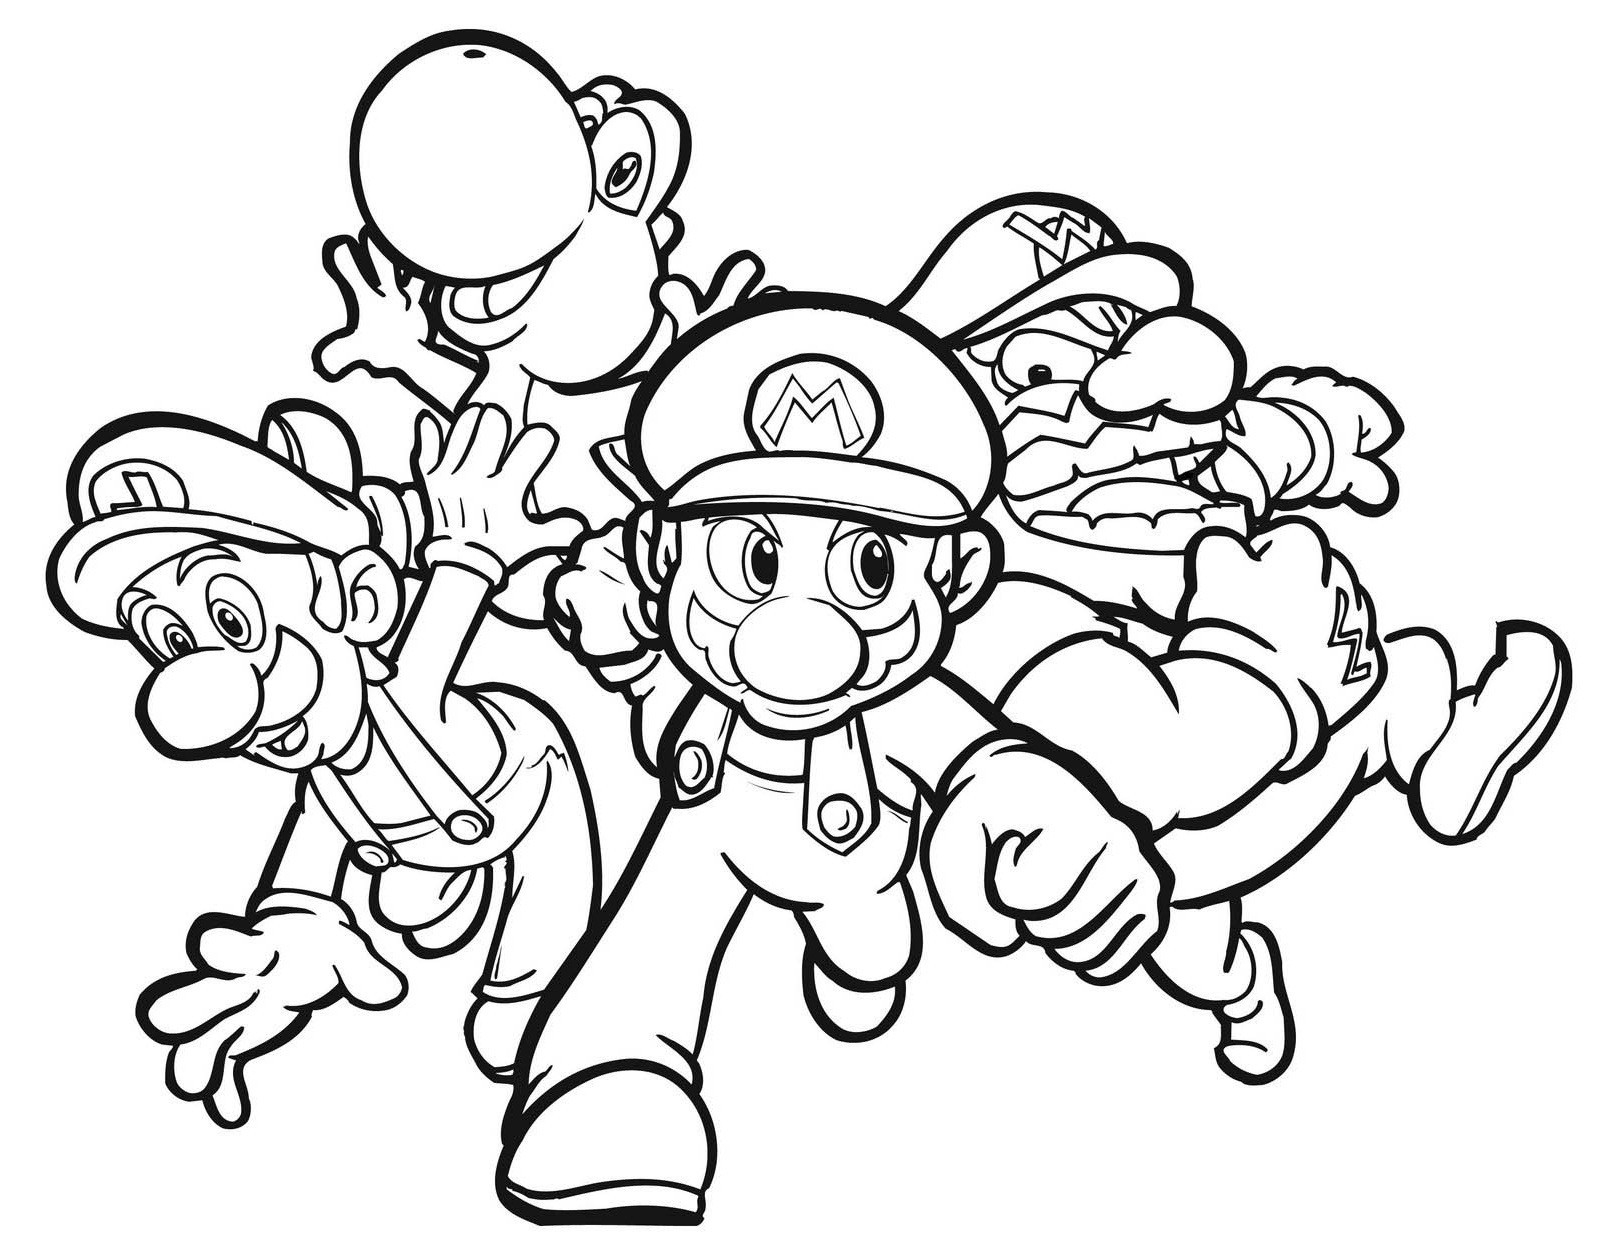 Coloring Pages : Free Printable Mario Coloring Pages At Getcolorings - Mario Coloring Pages Free Printable